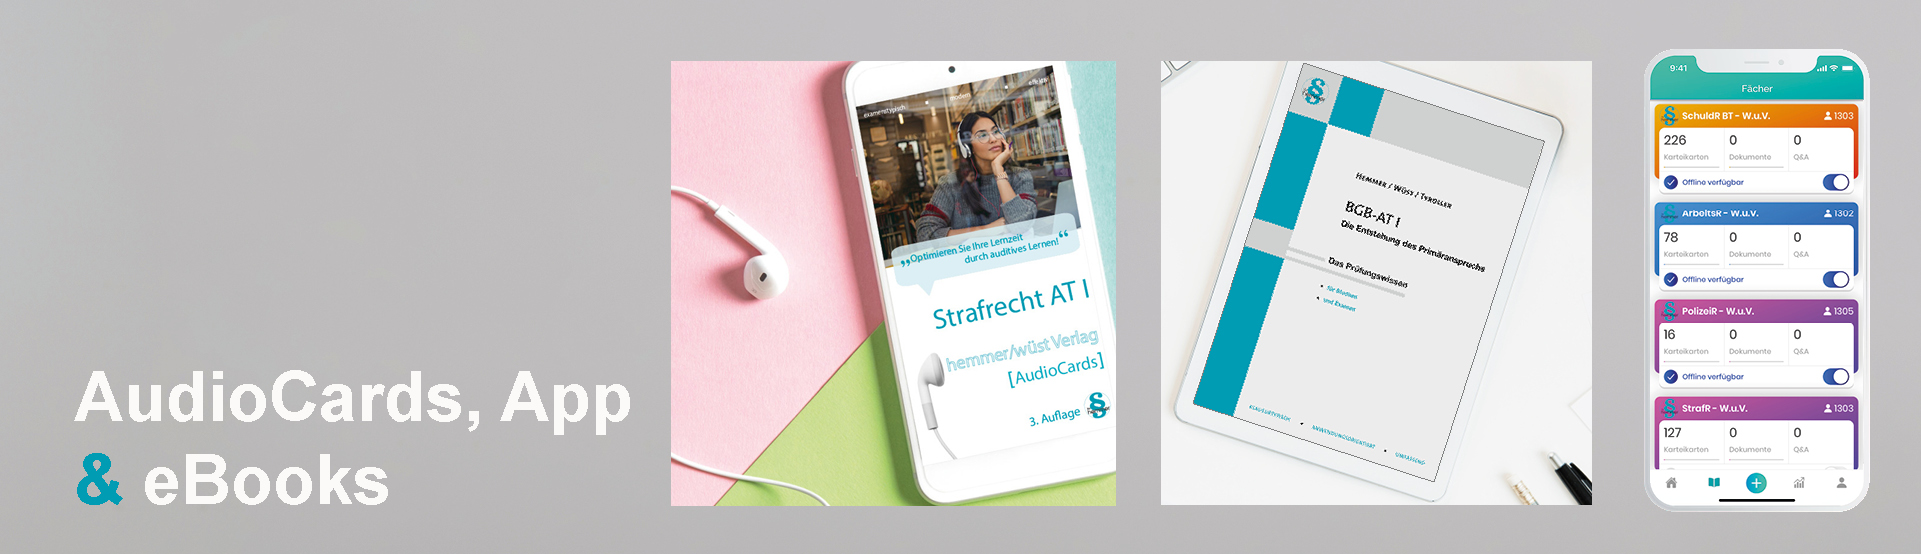 hemmer AudioCards, App und eBooks